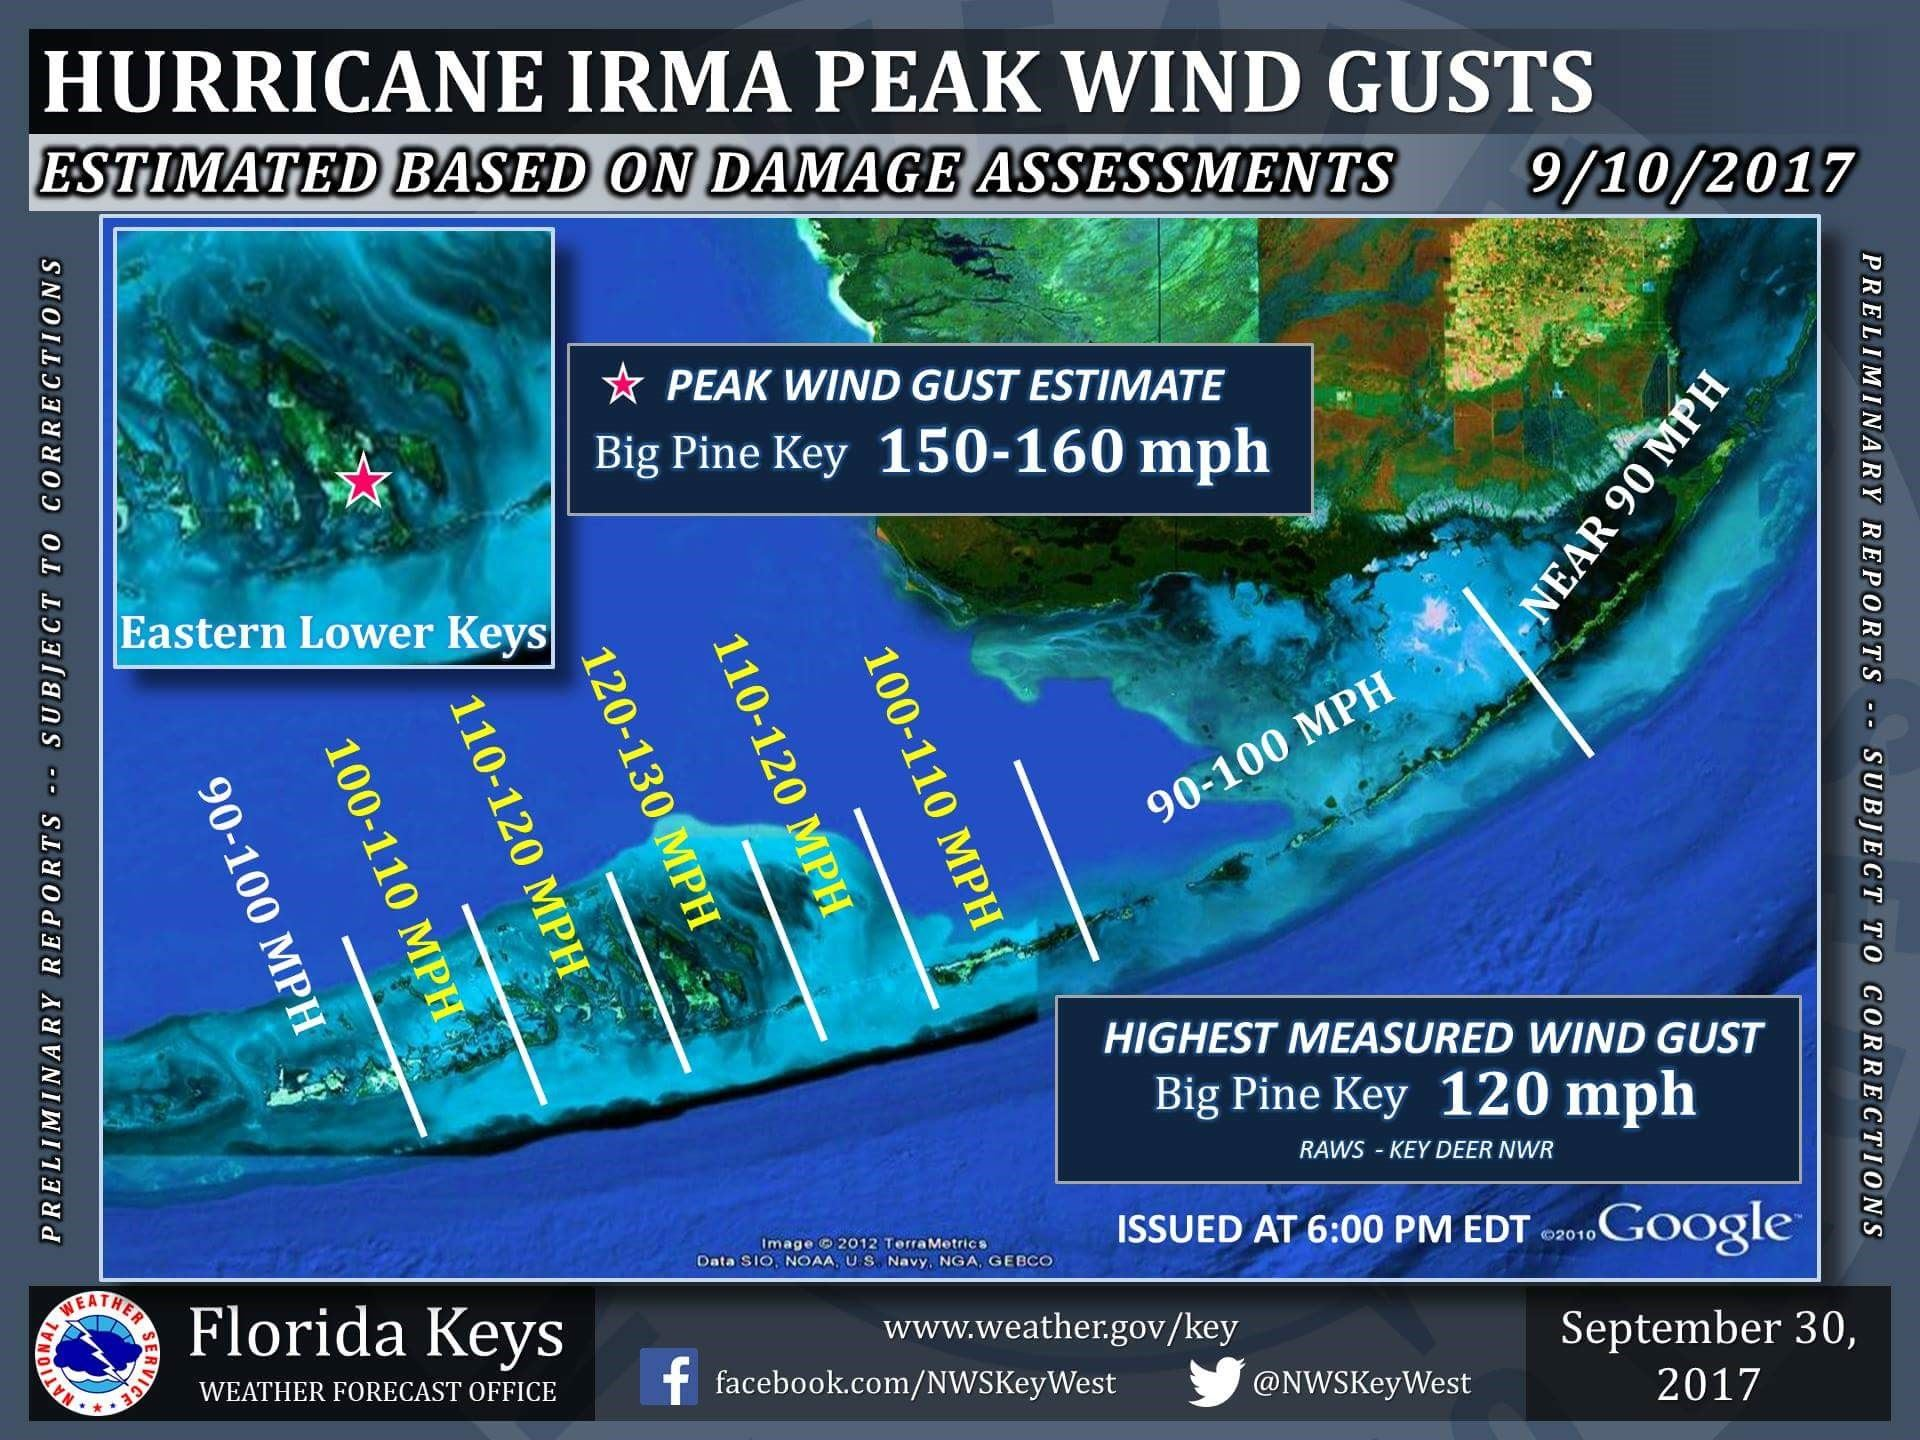 26 - Irma Graphic by National Weather Service